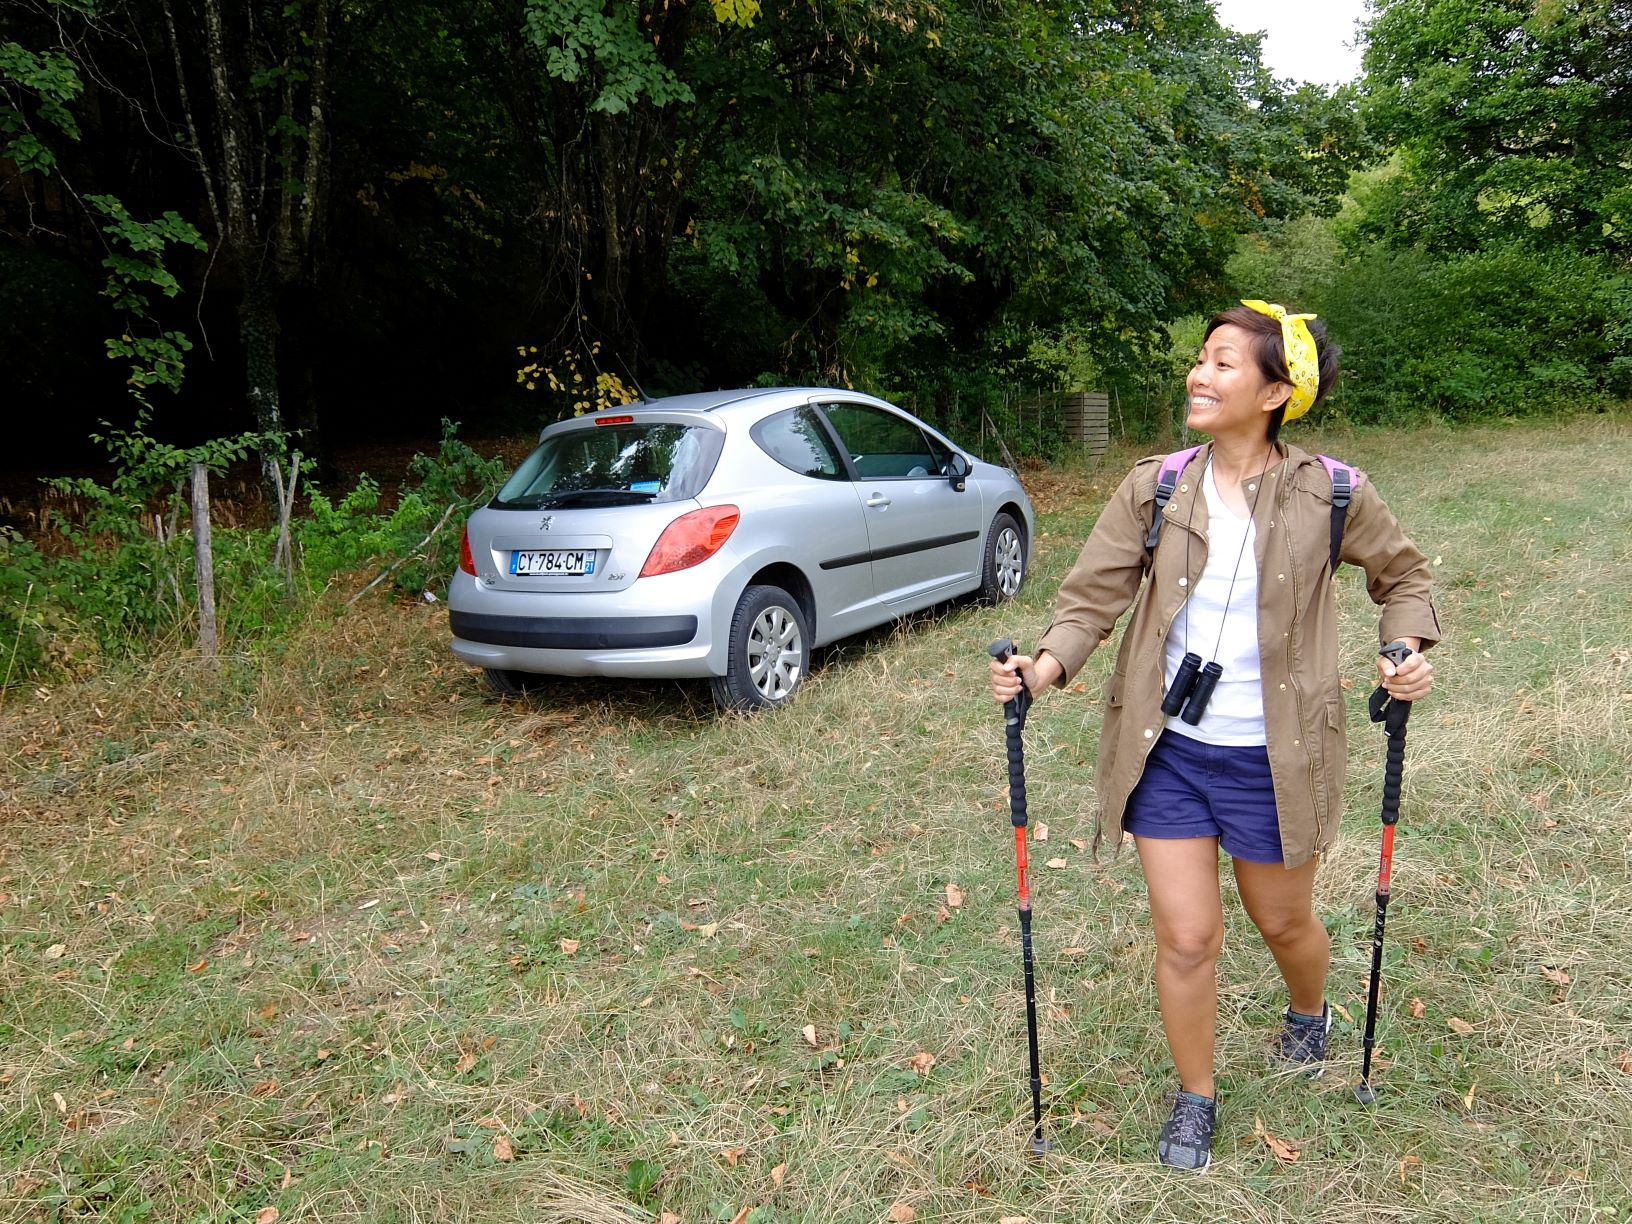 Girl holding two hiking sticks in front of parked car